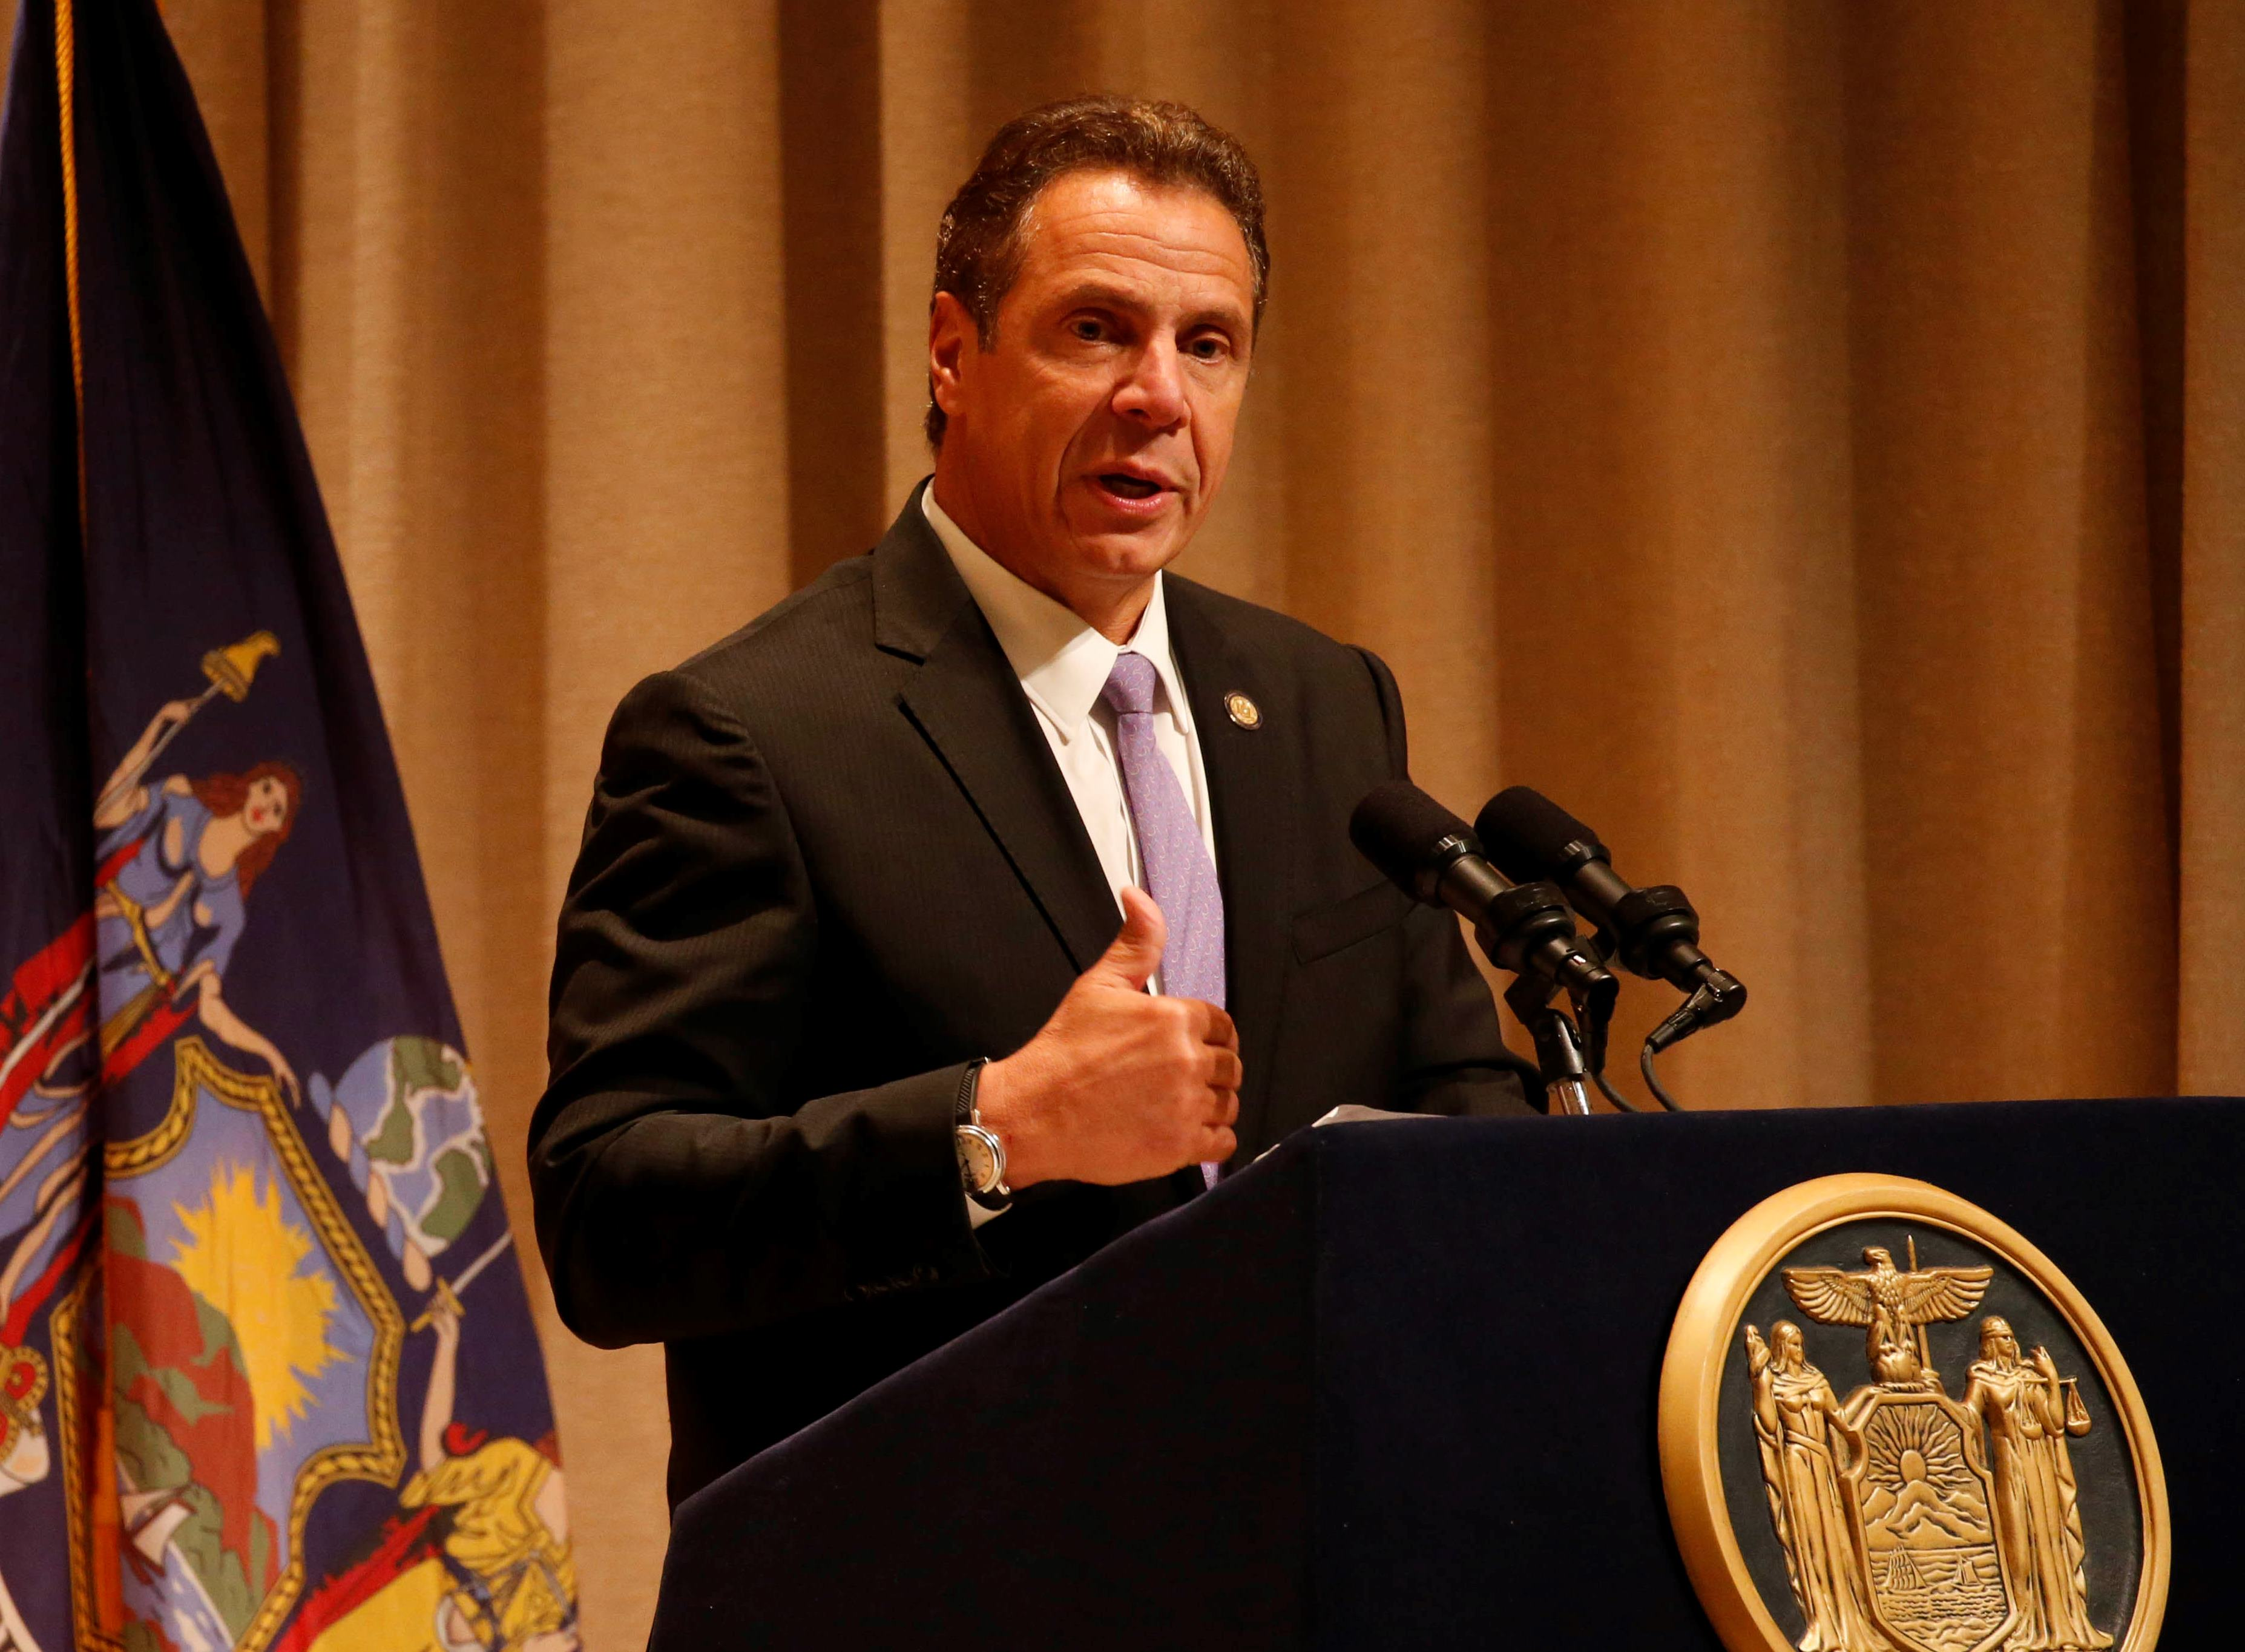 As expected, given his support for the industry during failed negotiations last year, Gov. Andrew Cuomo will again this week support bringing ride-hailing services, such as Uber and Lyft, to upstate. (Derek Gee/Buffalo News)